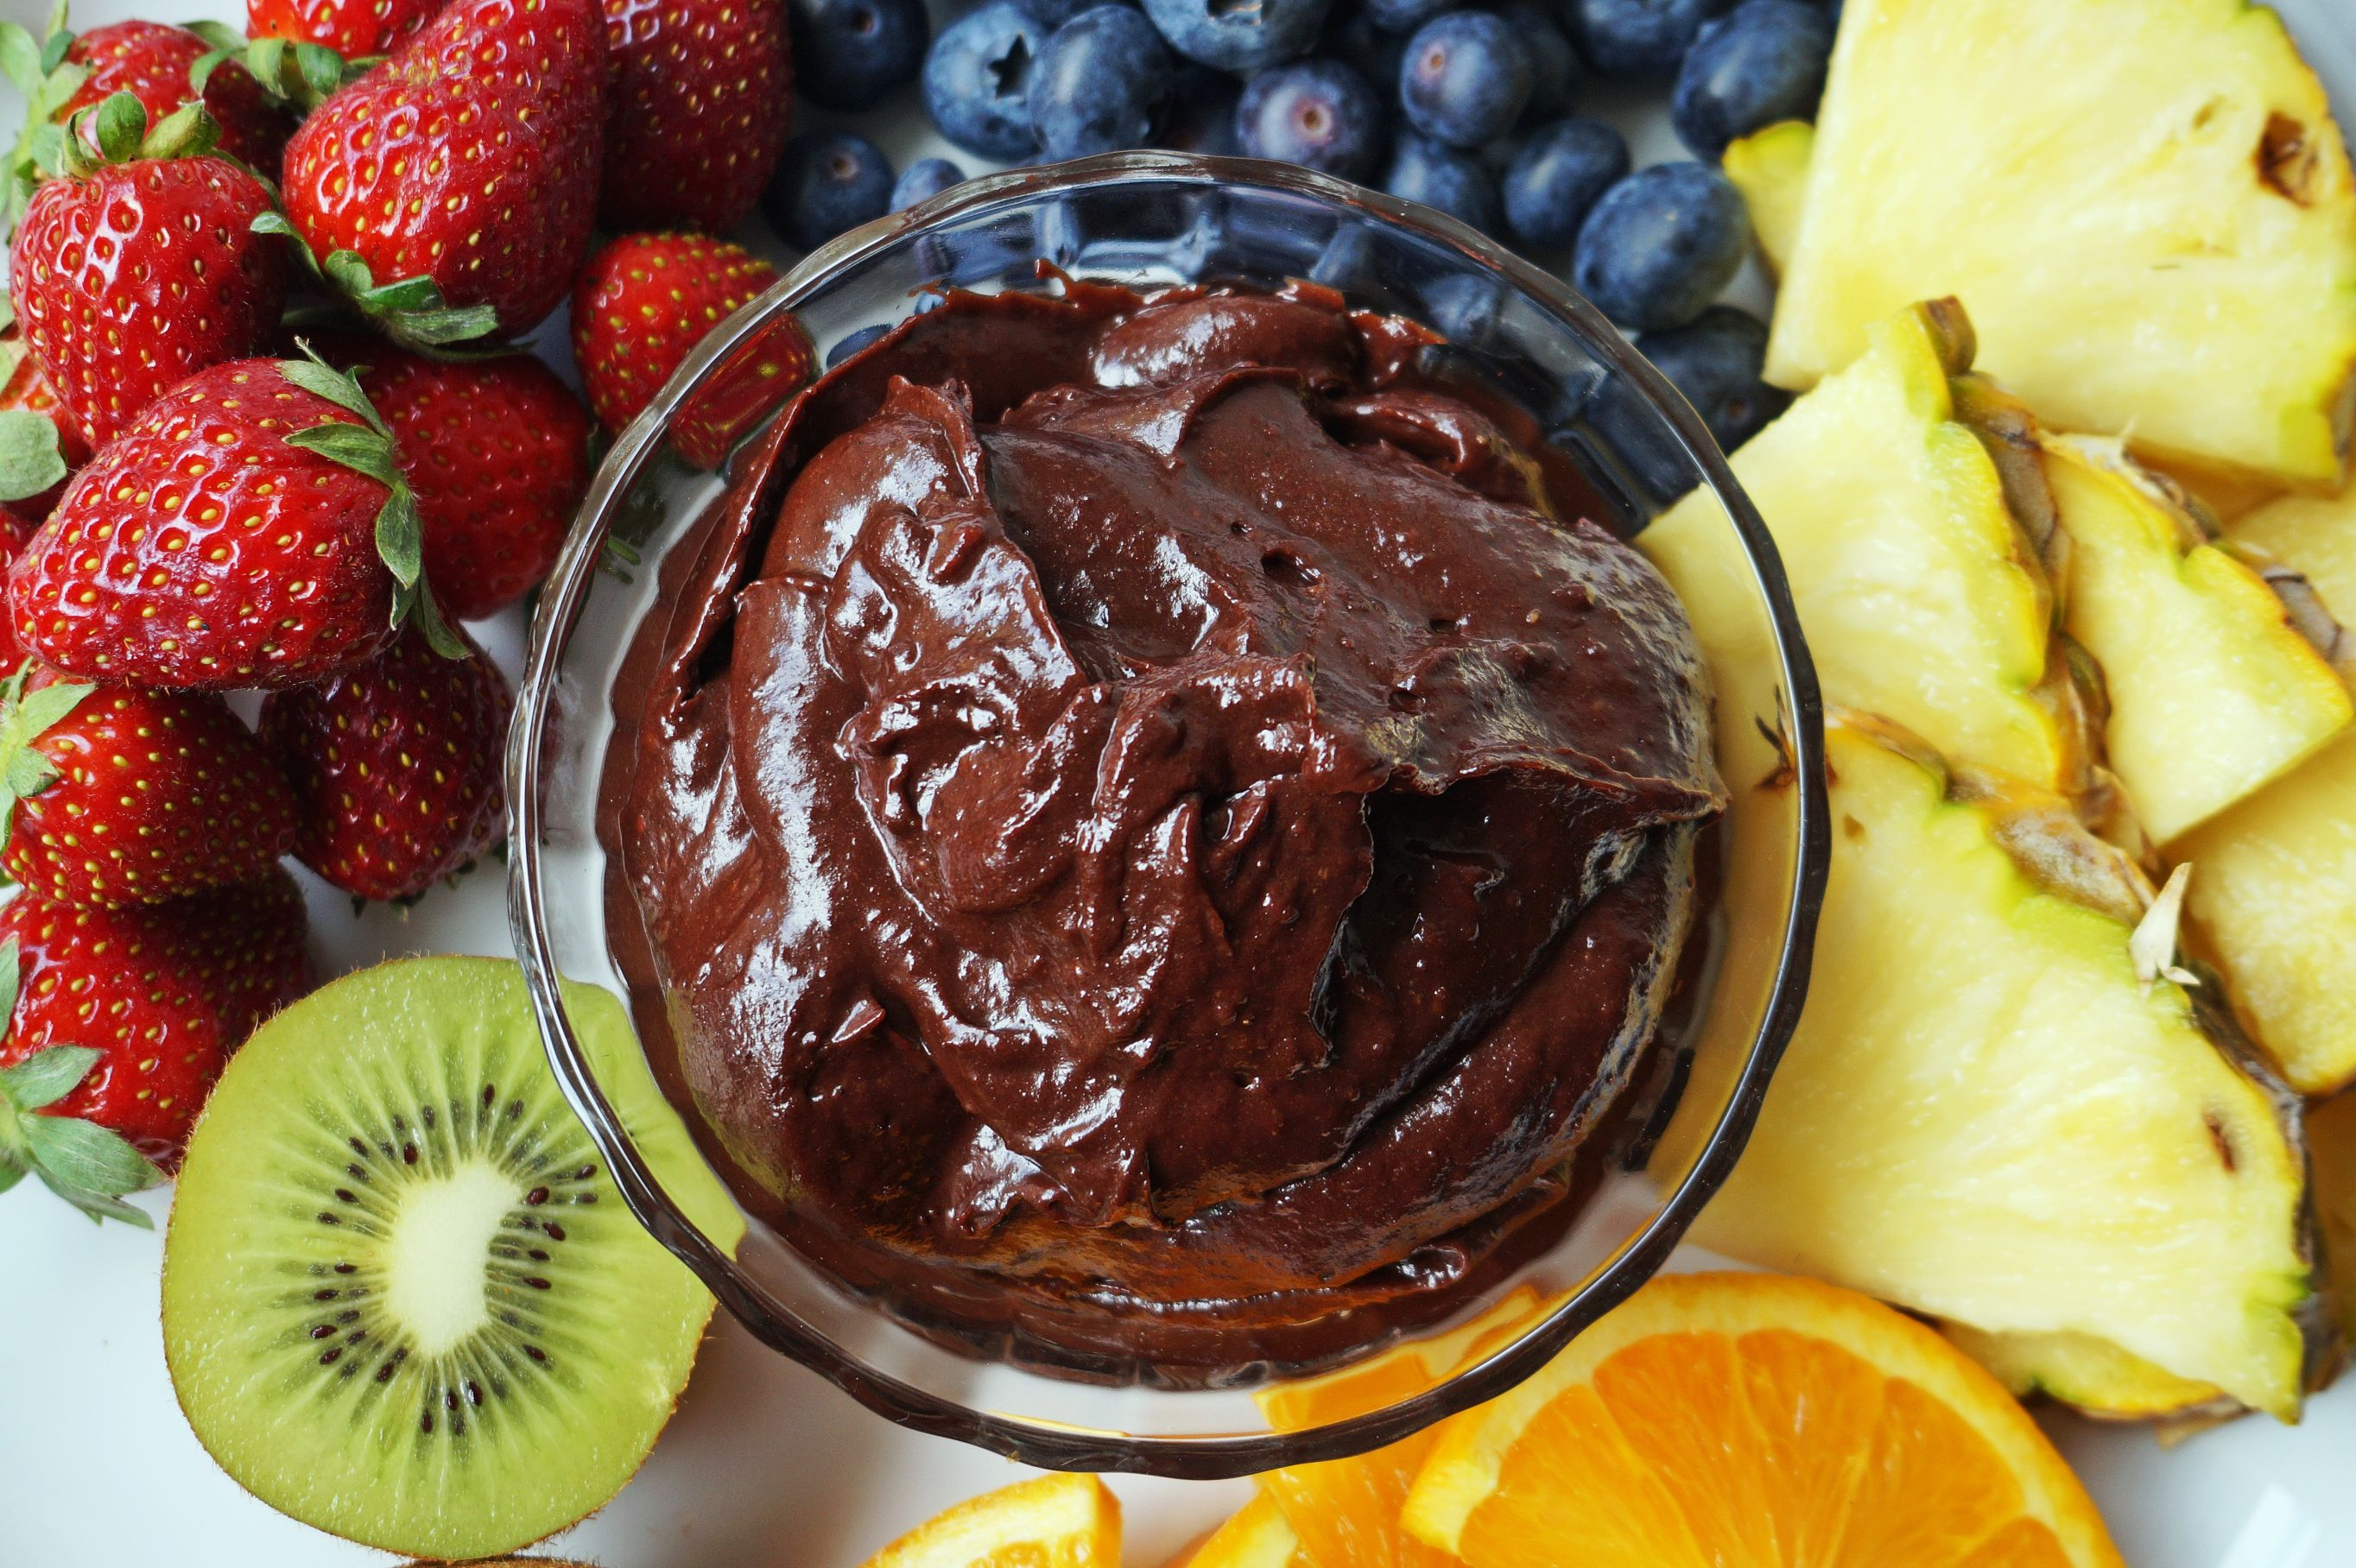 Chocolate Fudge Dip vegan